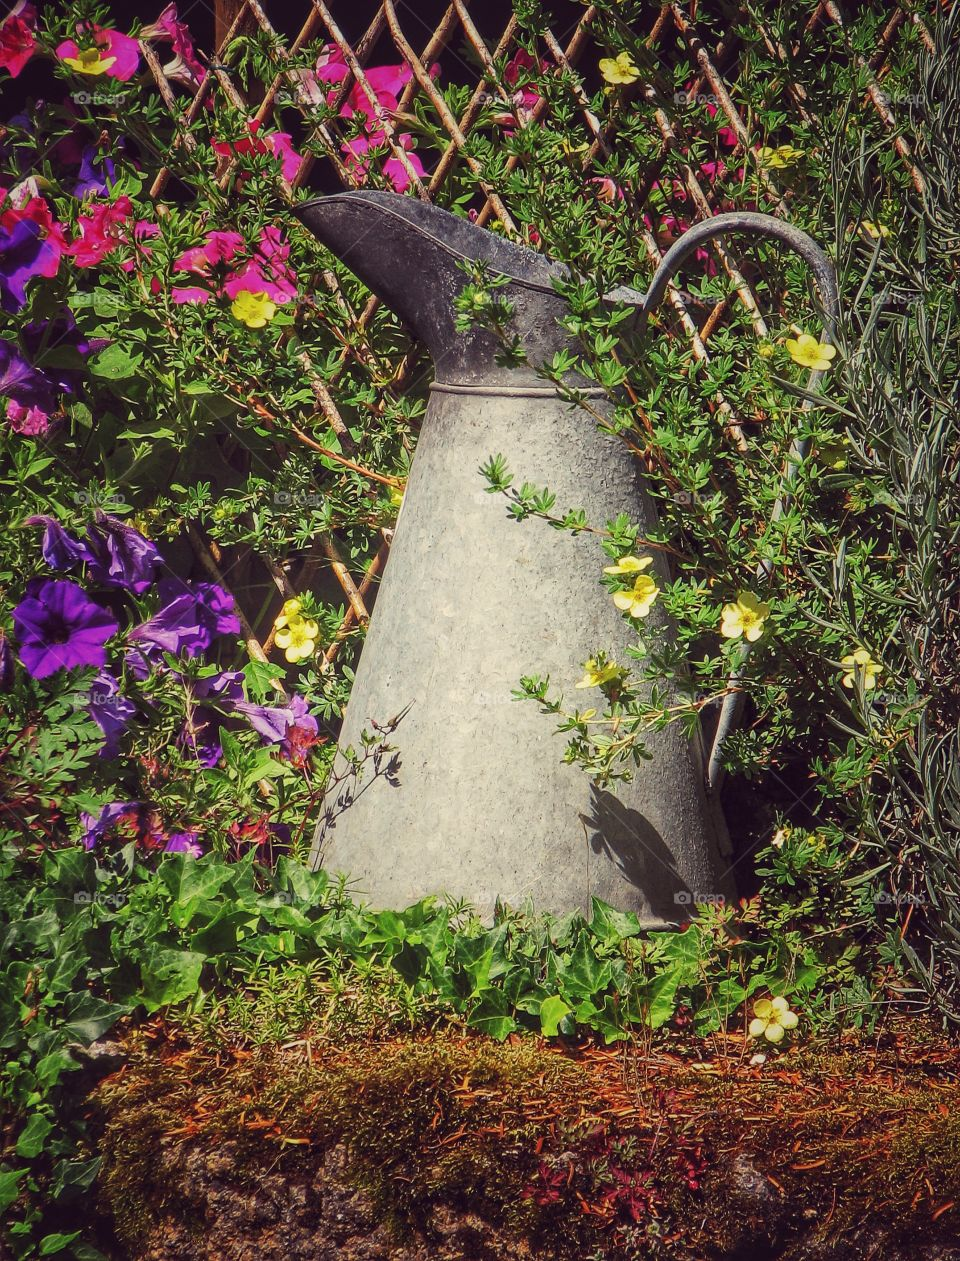 A large metal milking jug sitting on a stone wall and surrounded by overgrown vines and plants. A jug disappearing in the undergrowth.